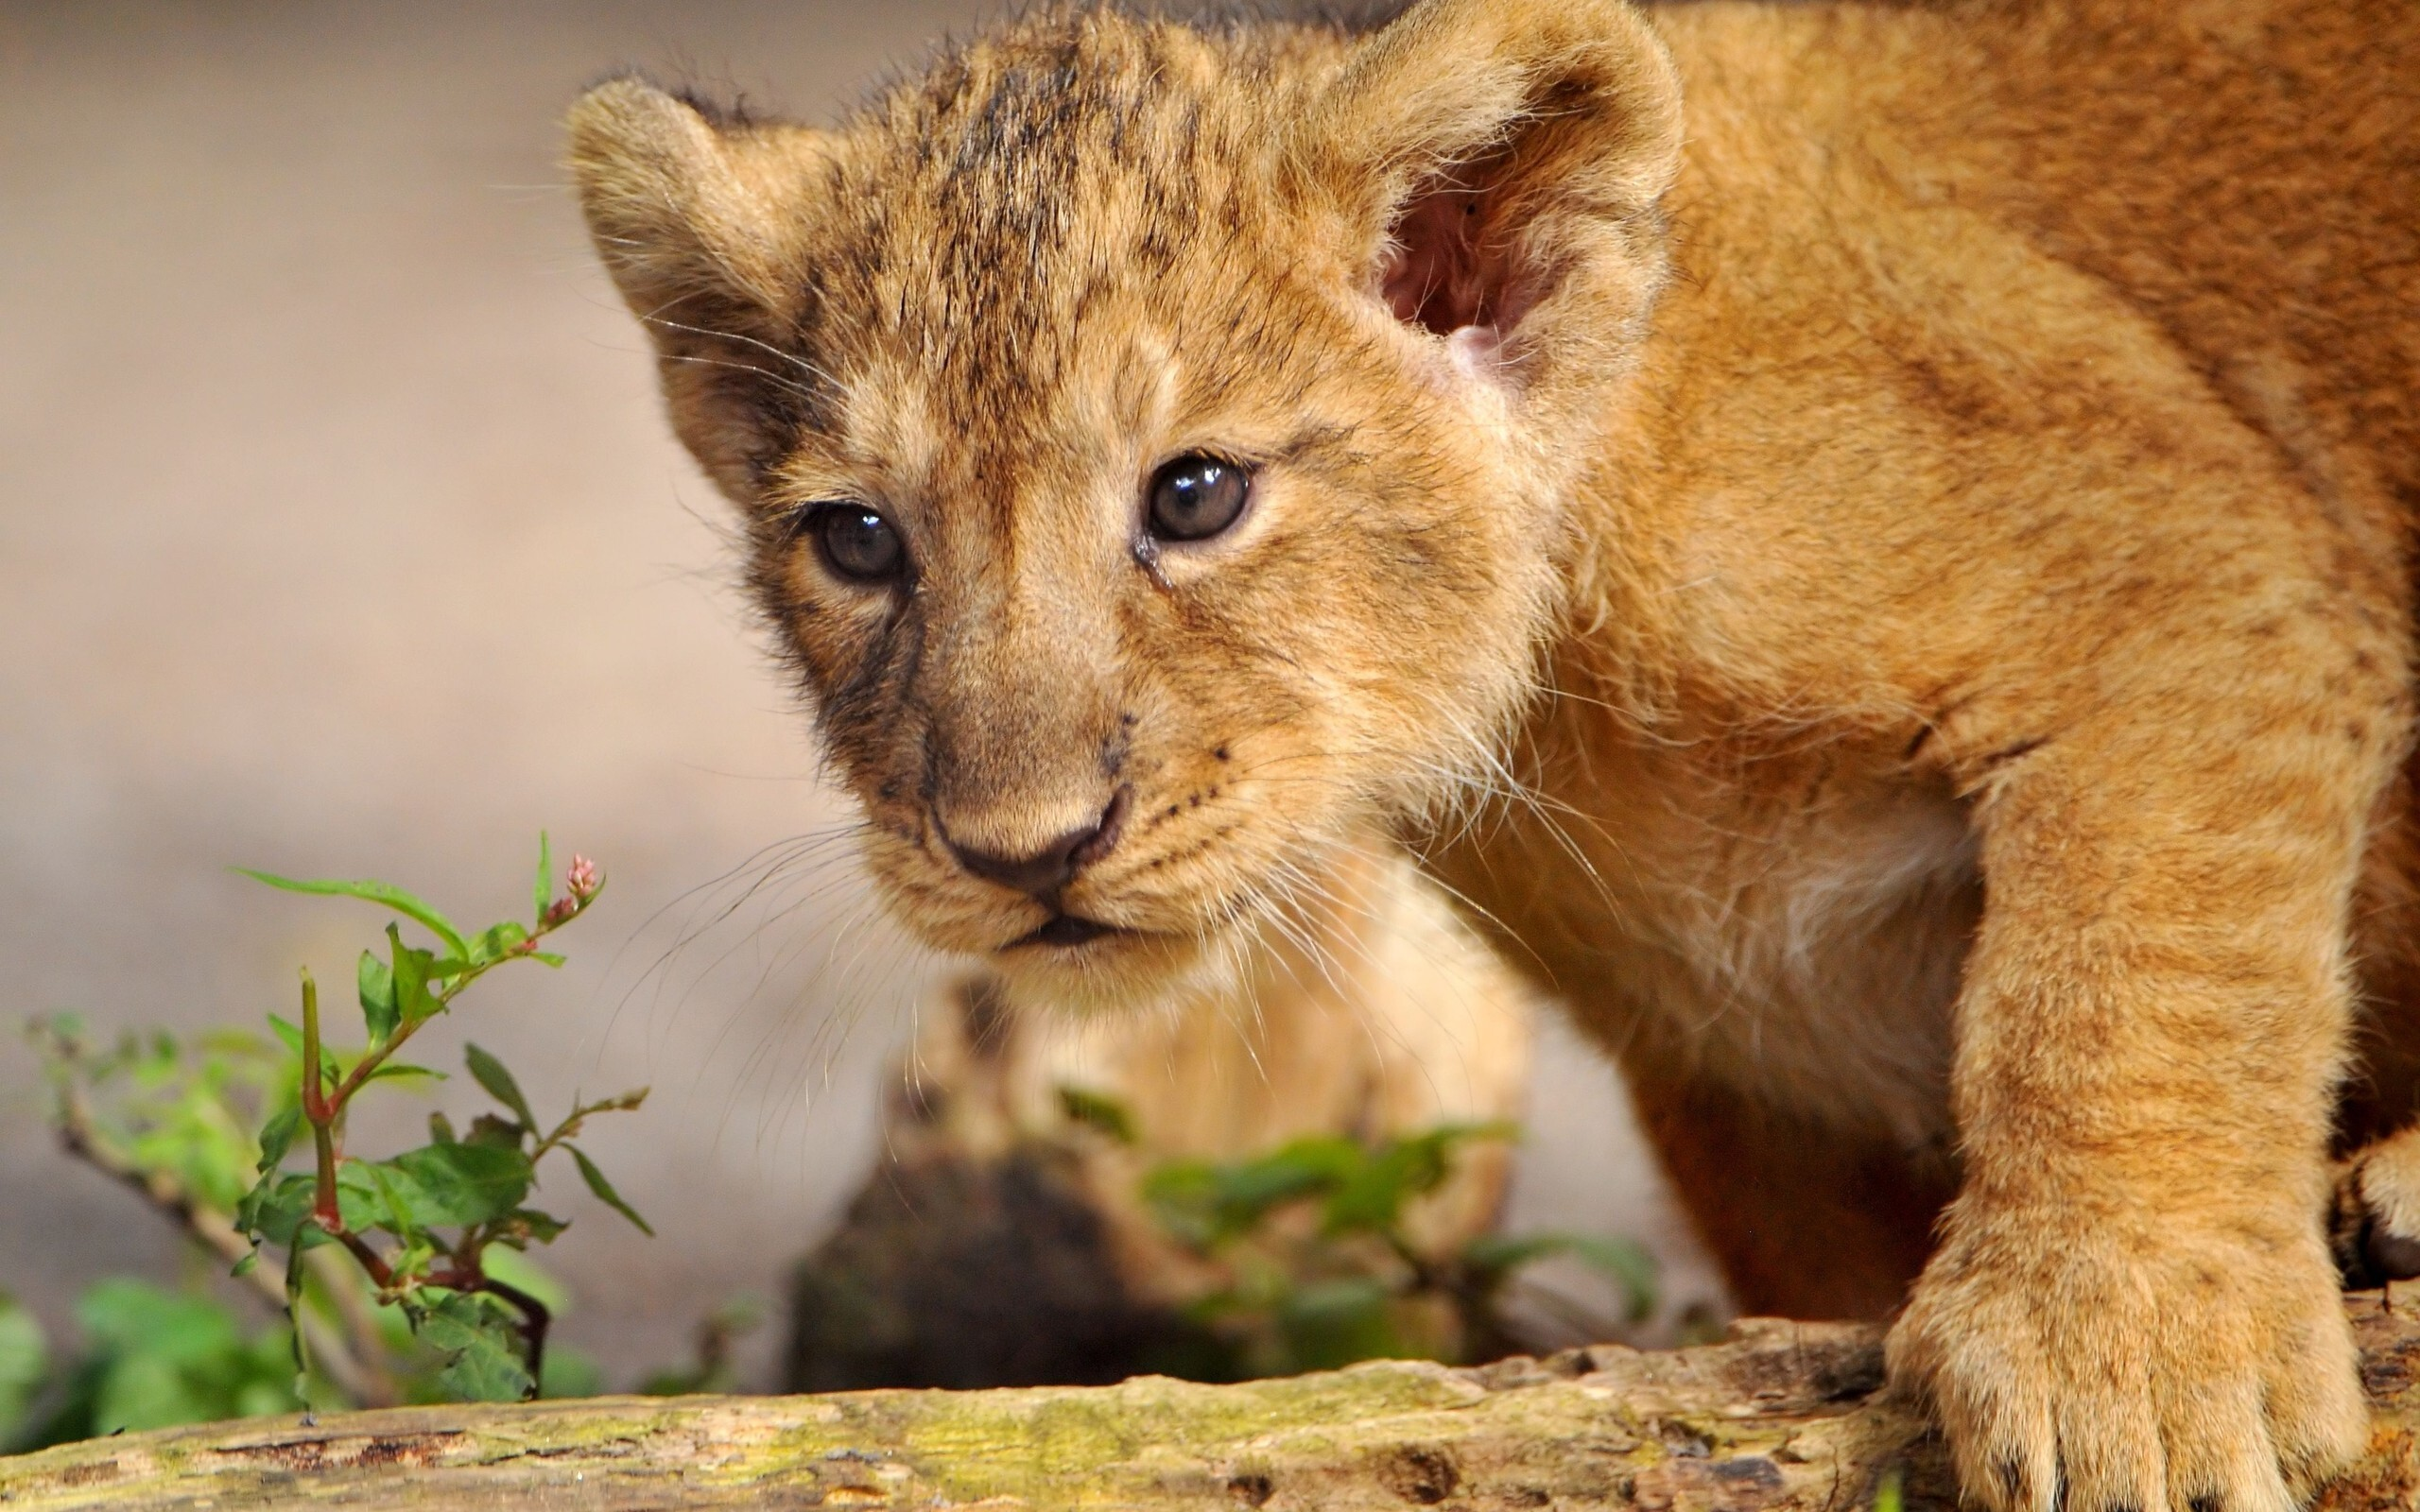 Beautiful Lion Cub Wallpaper Hd Wallpapers